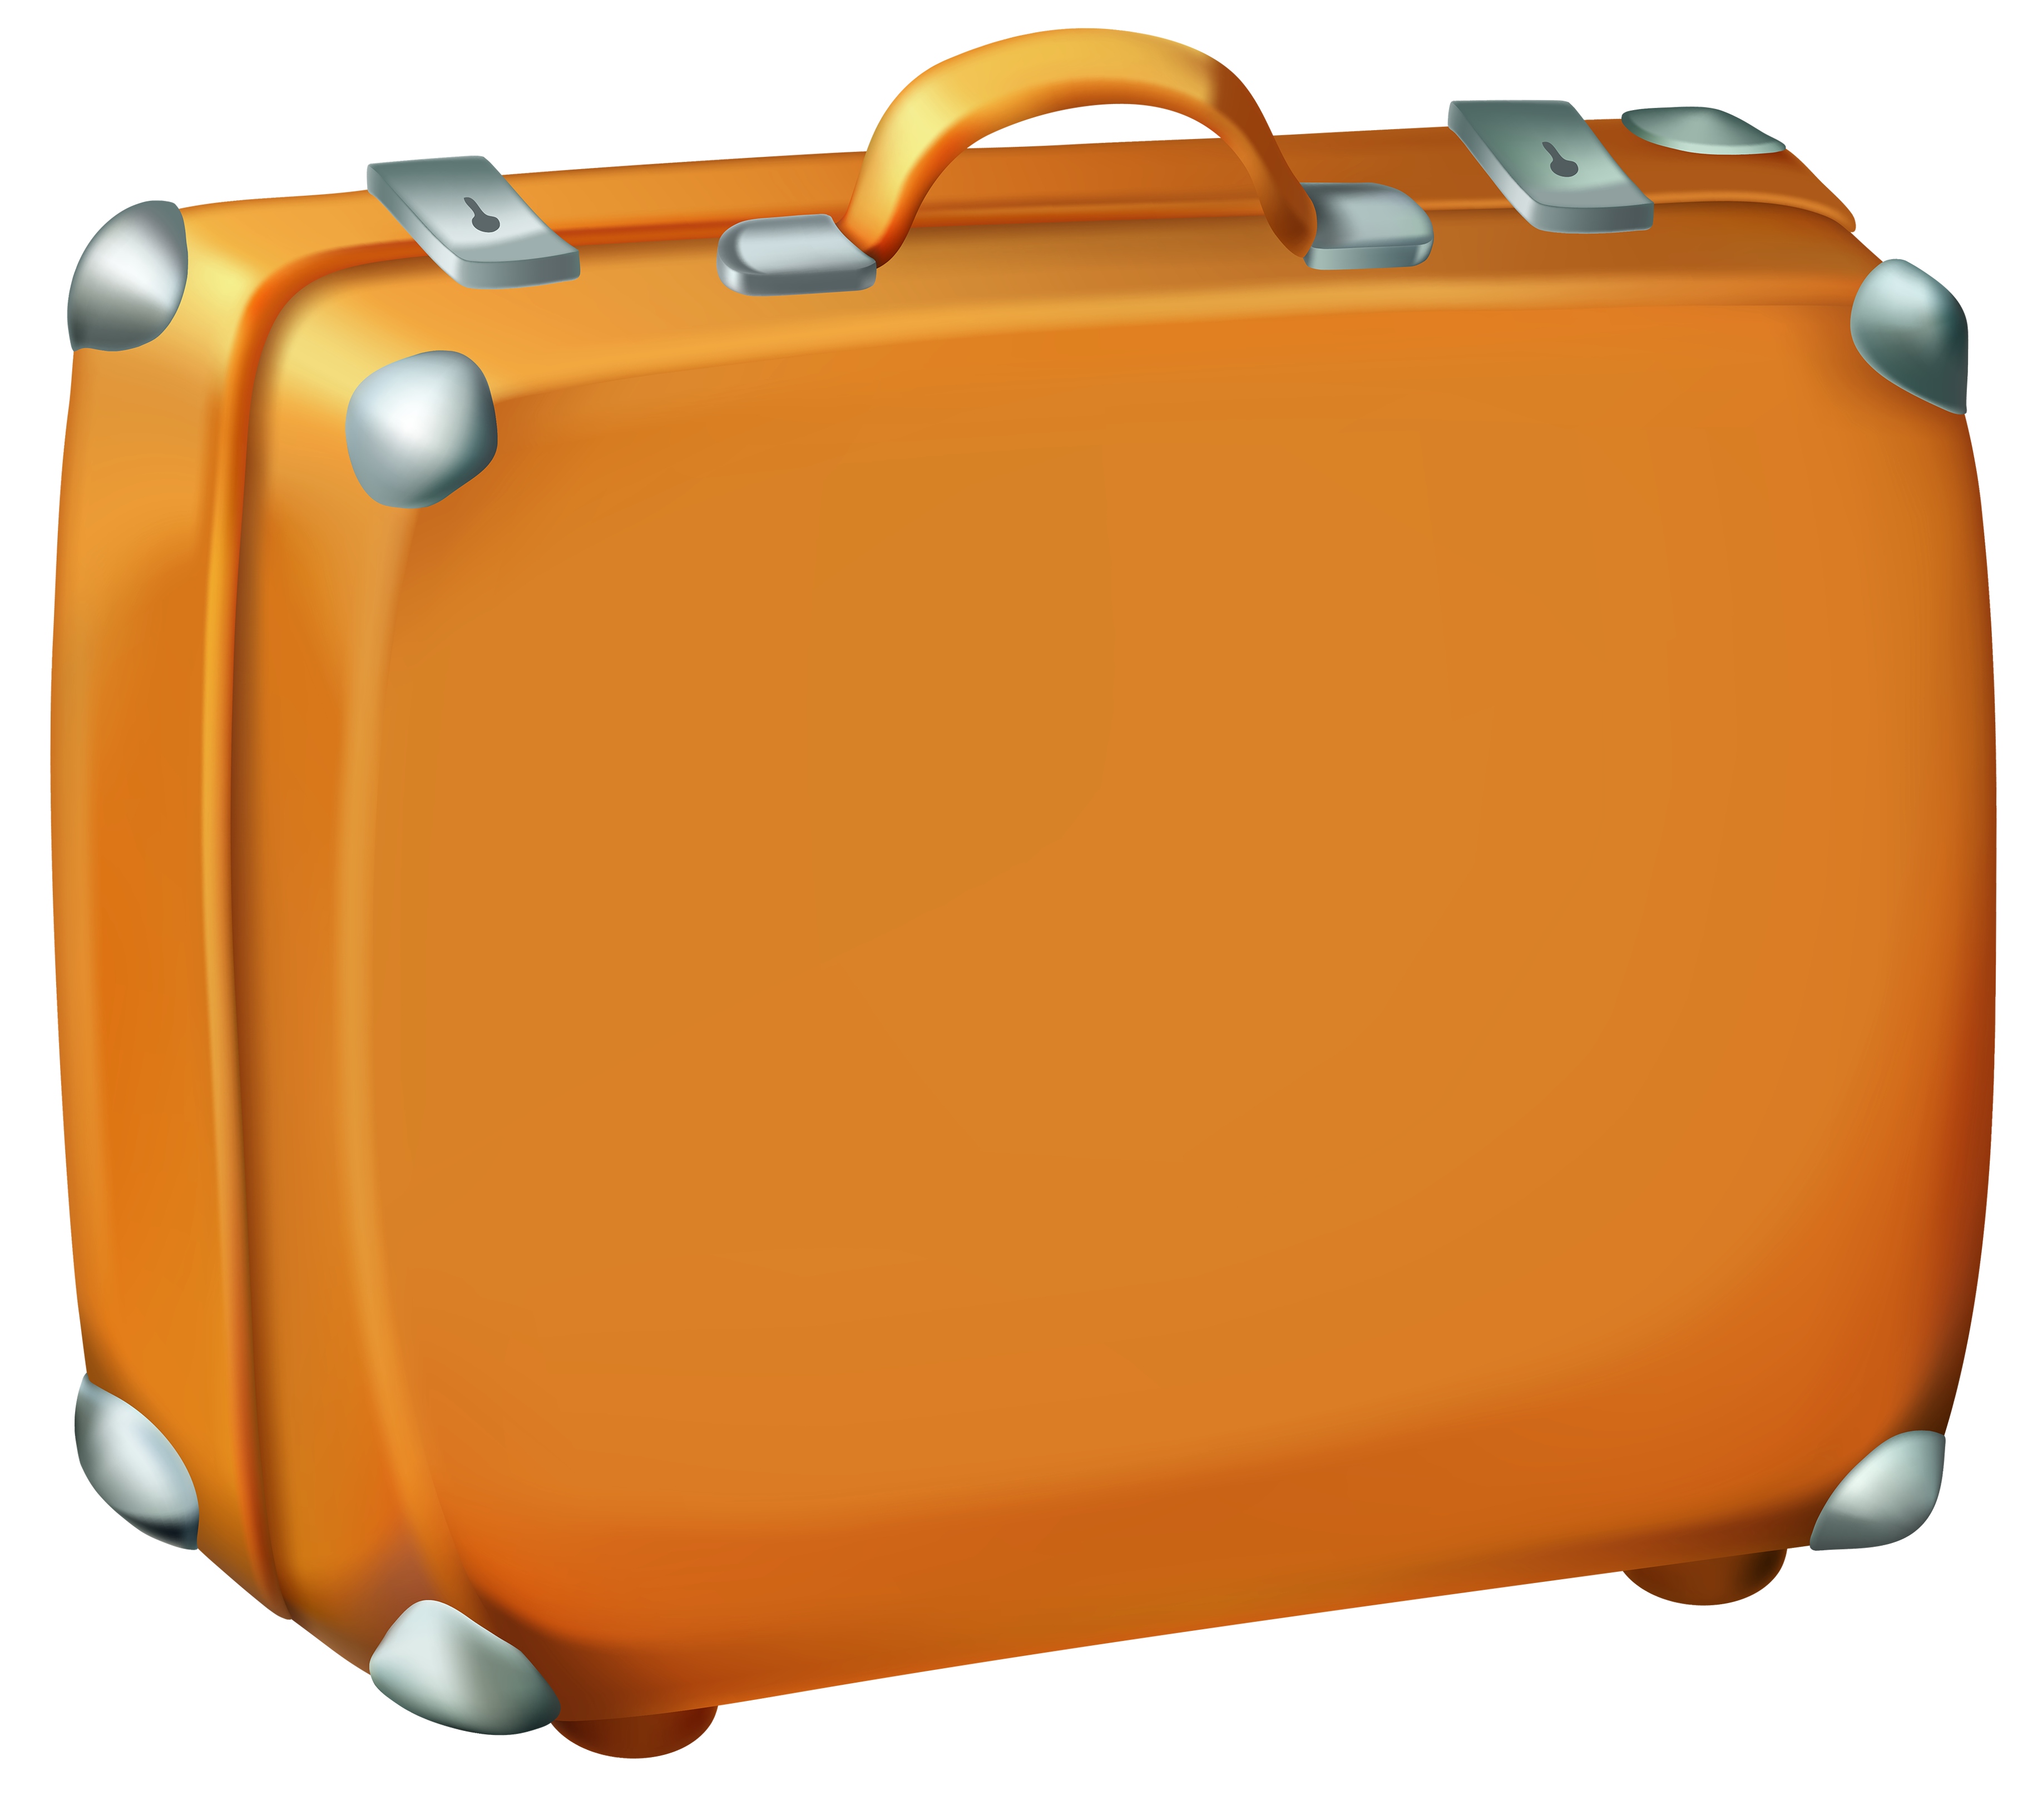 Suitcase clipart #6, Download drawings